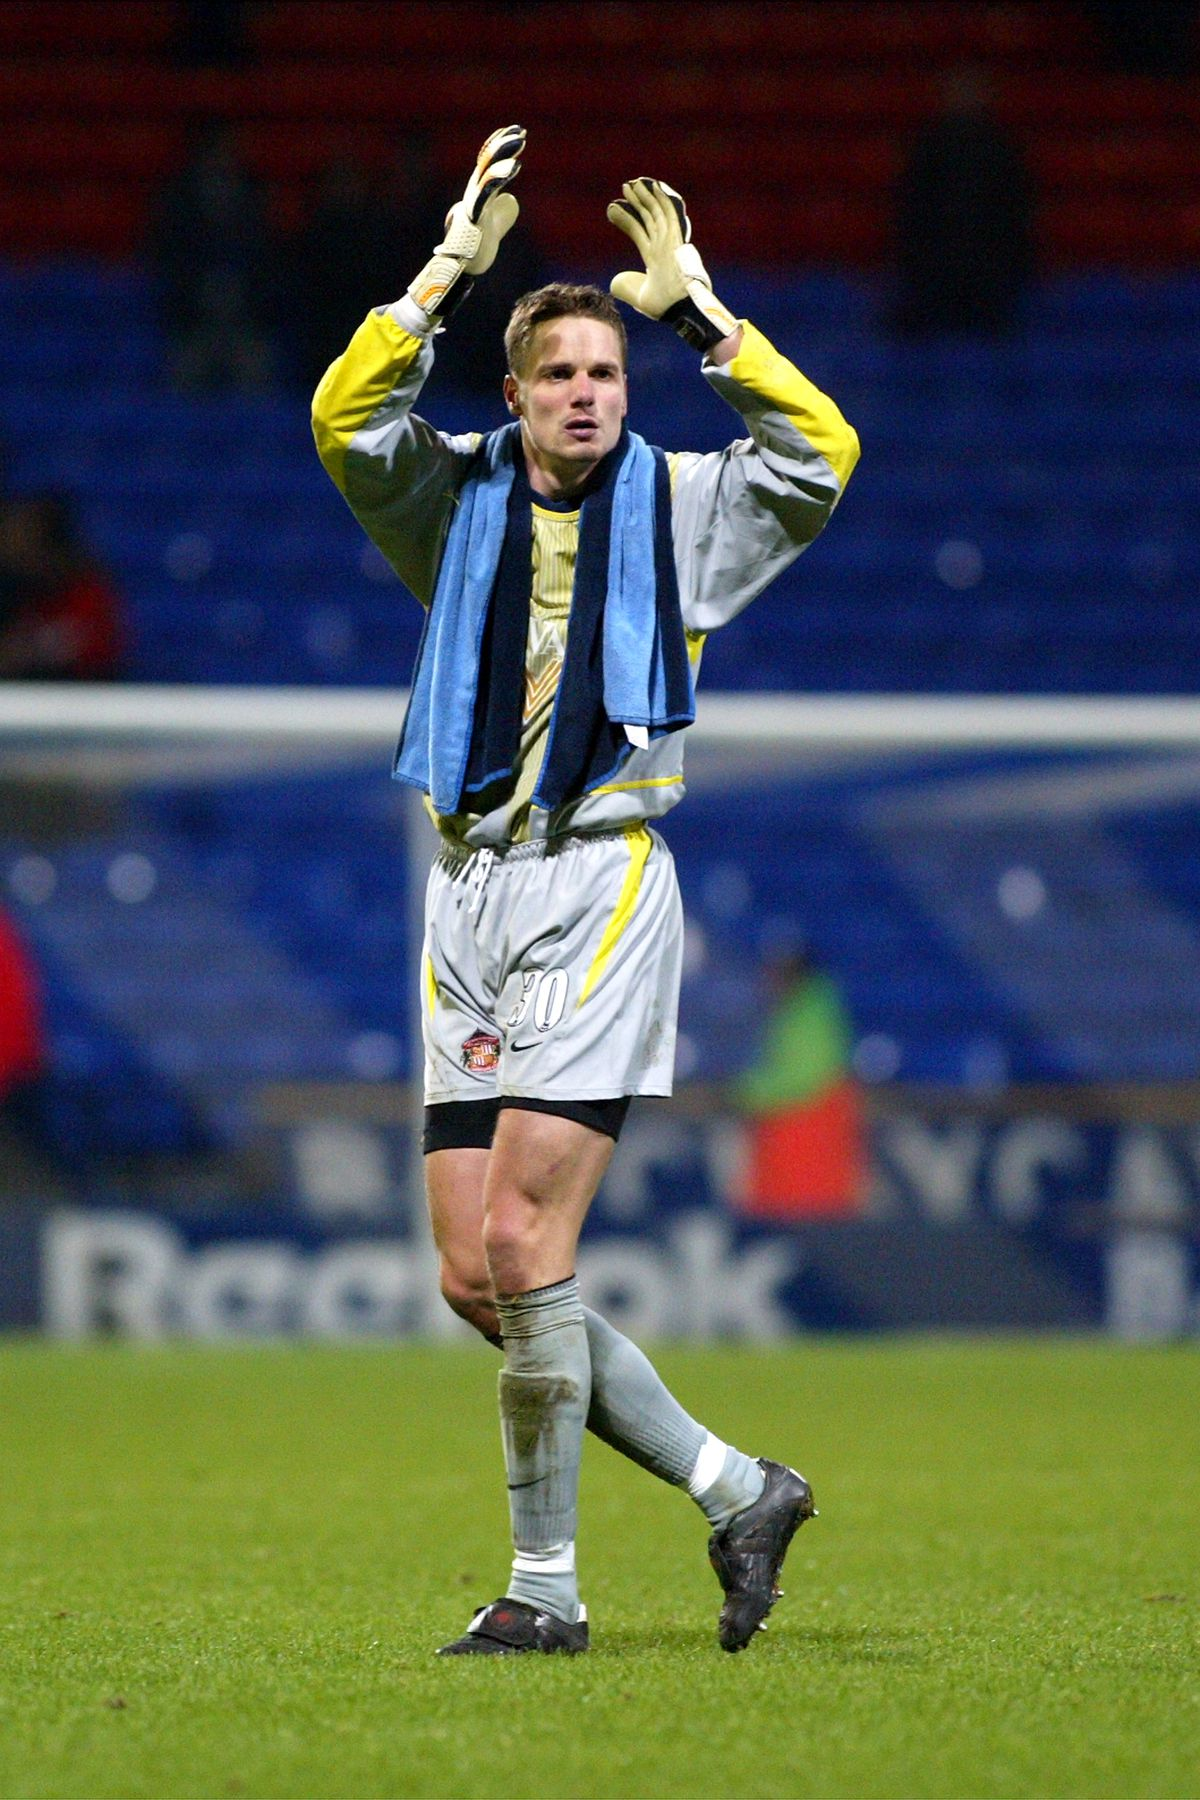 Soccer - FA Cup - Third Round - Bolton Wanderers v Sunderland